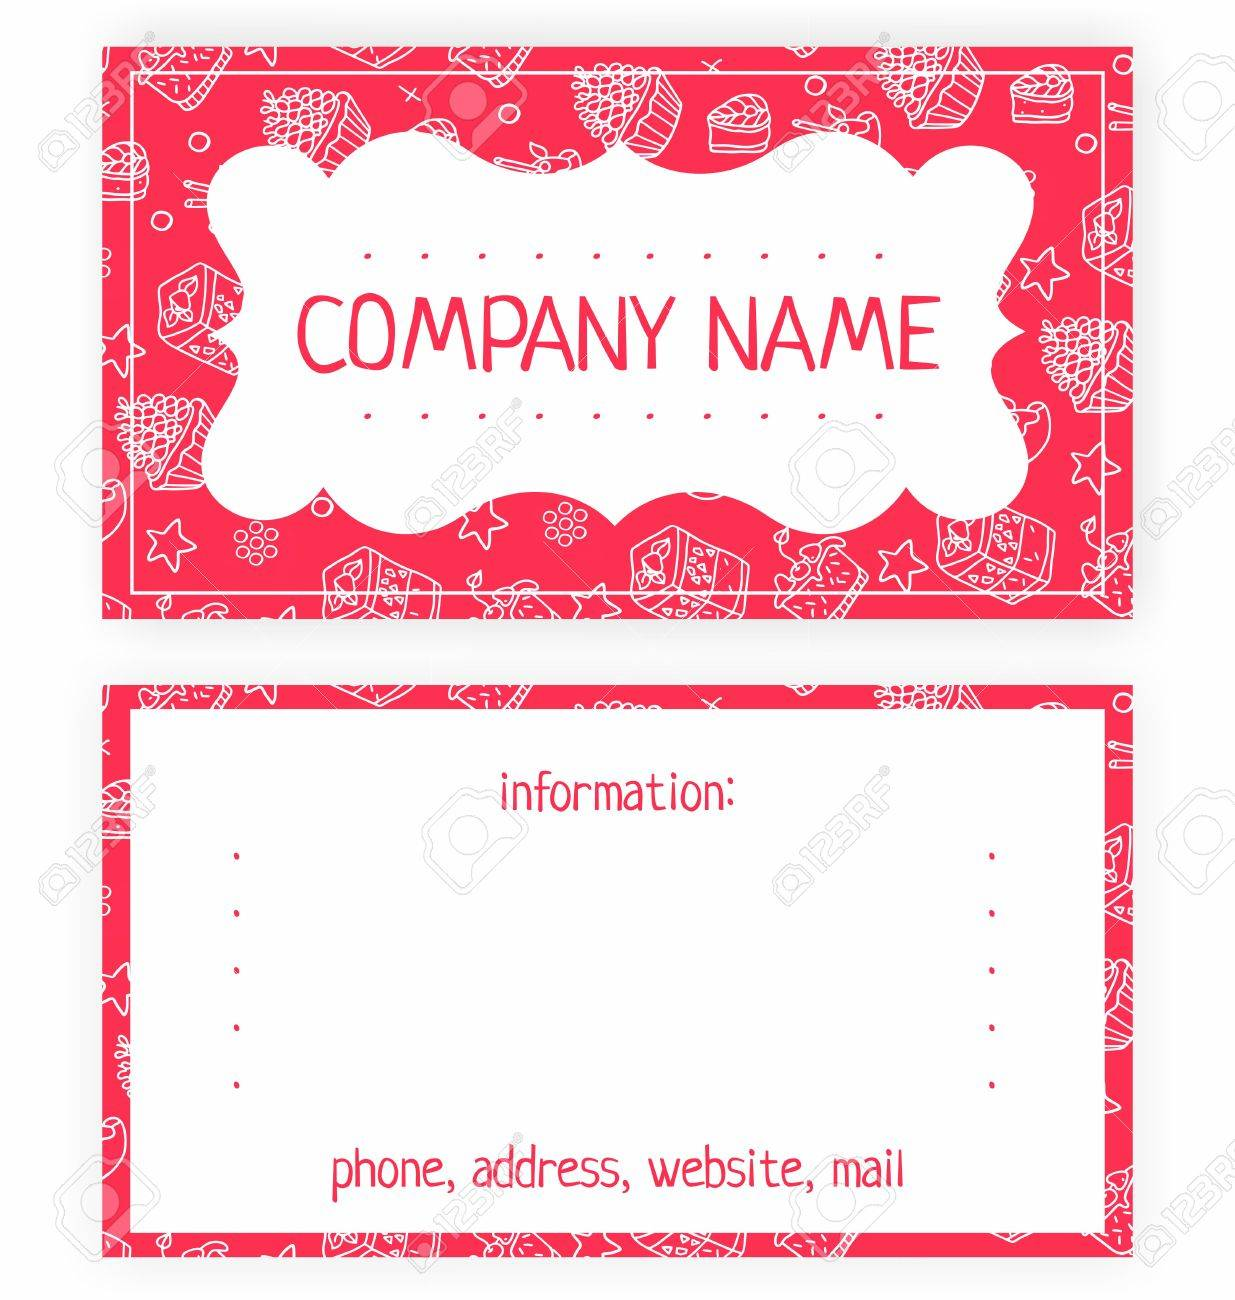 Business Card Of White Cakes On A Pink Background Royalty Free ...